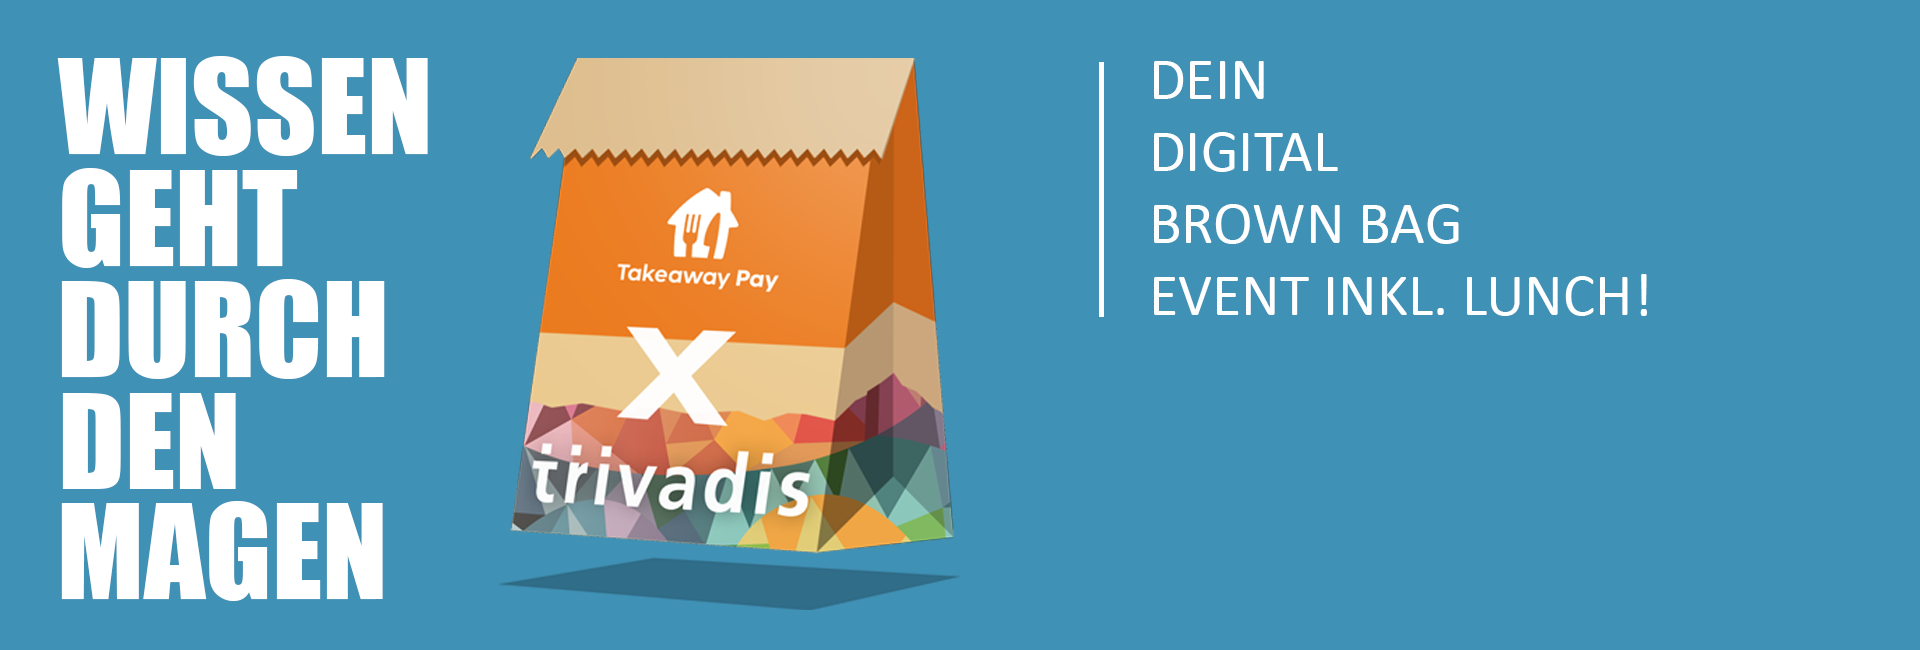 header-trivadis-digital-brown-bag-event-biGENIUS_1920x650px_NEU